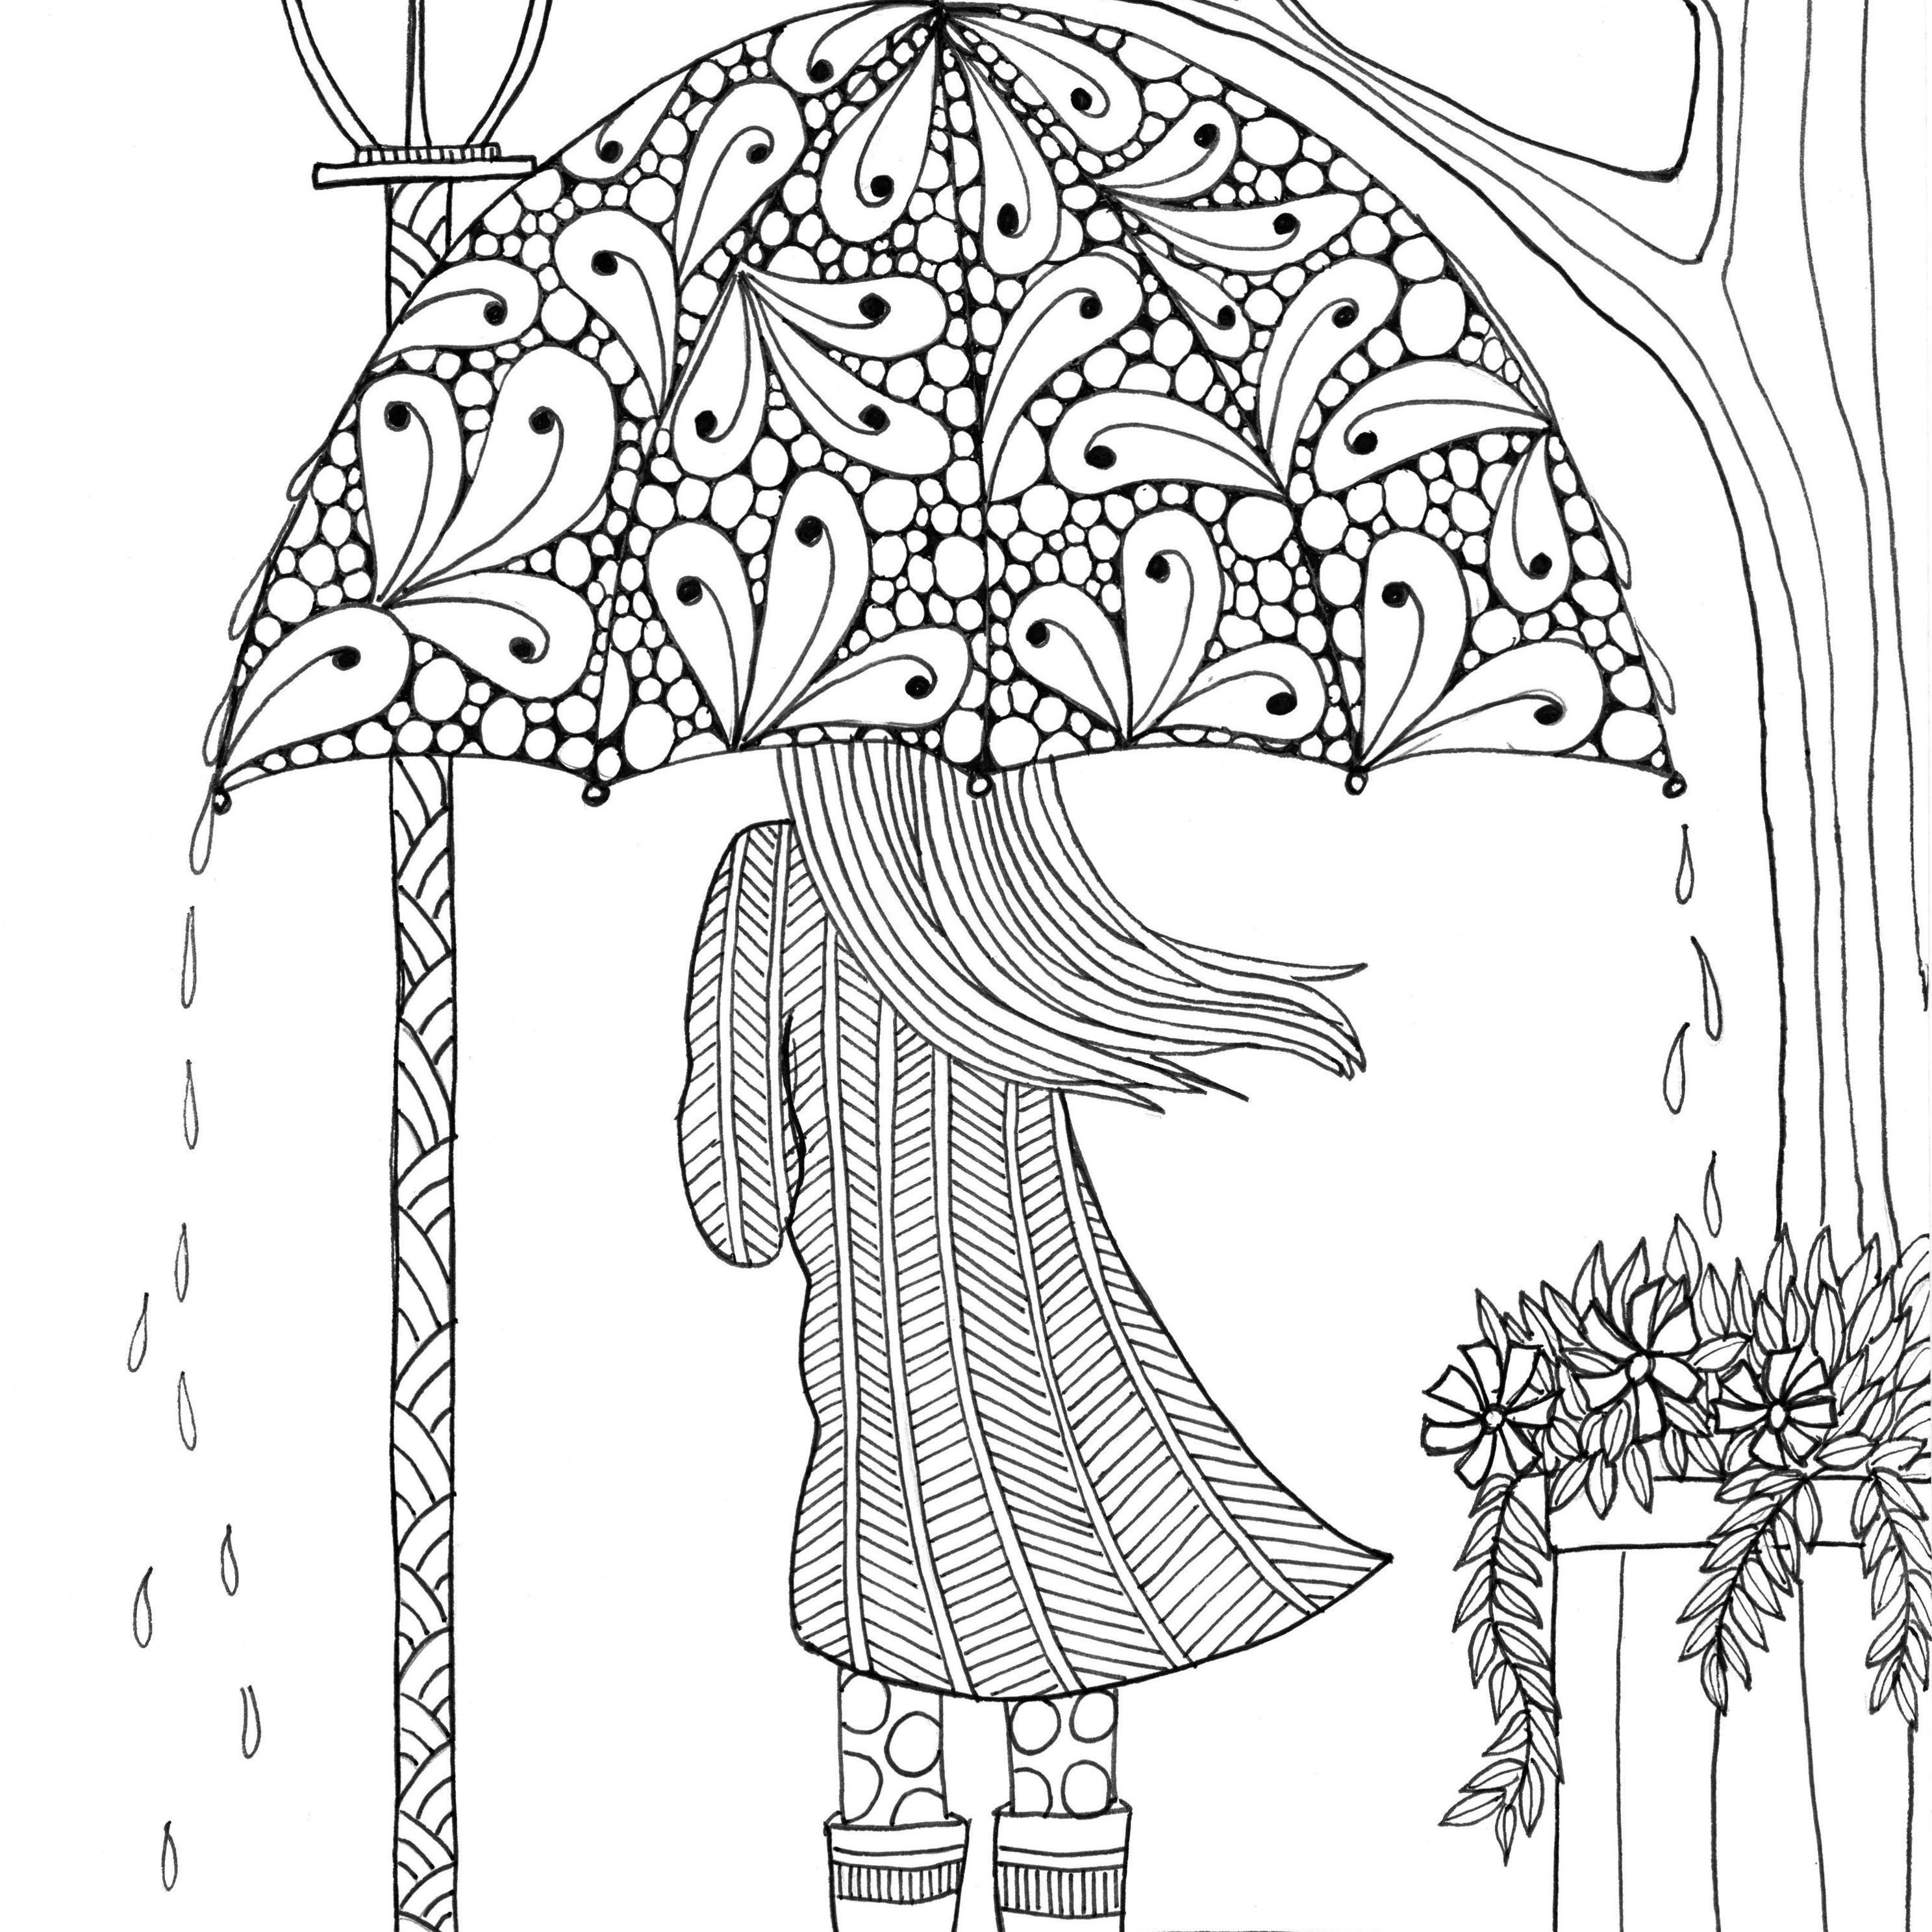 Coloring ~ Coloring Fantastic Adult Books Nature Advanced For Adults - Free Printable Nature Coloring Pages For Adults